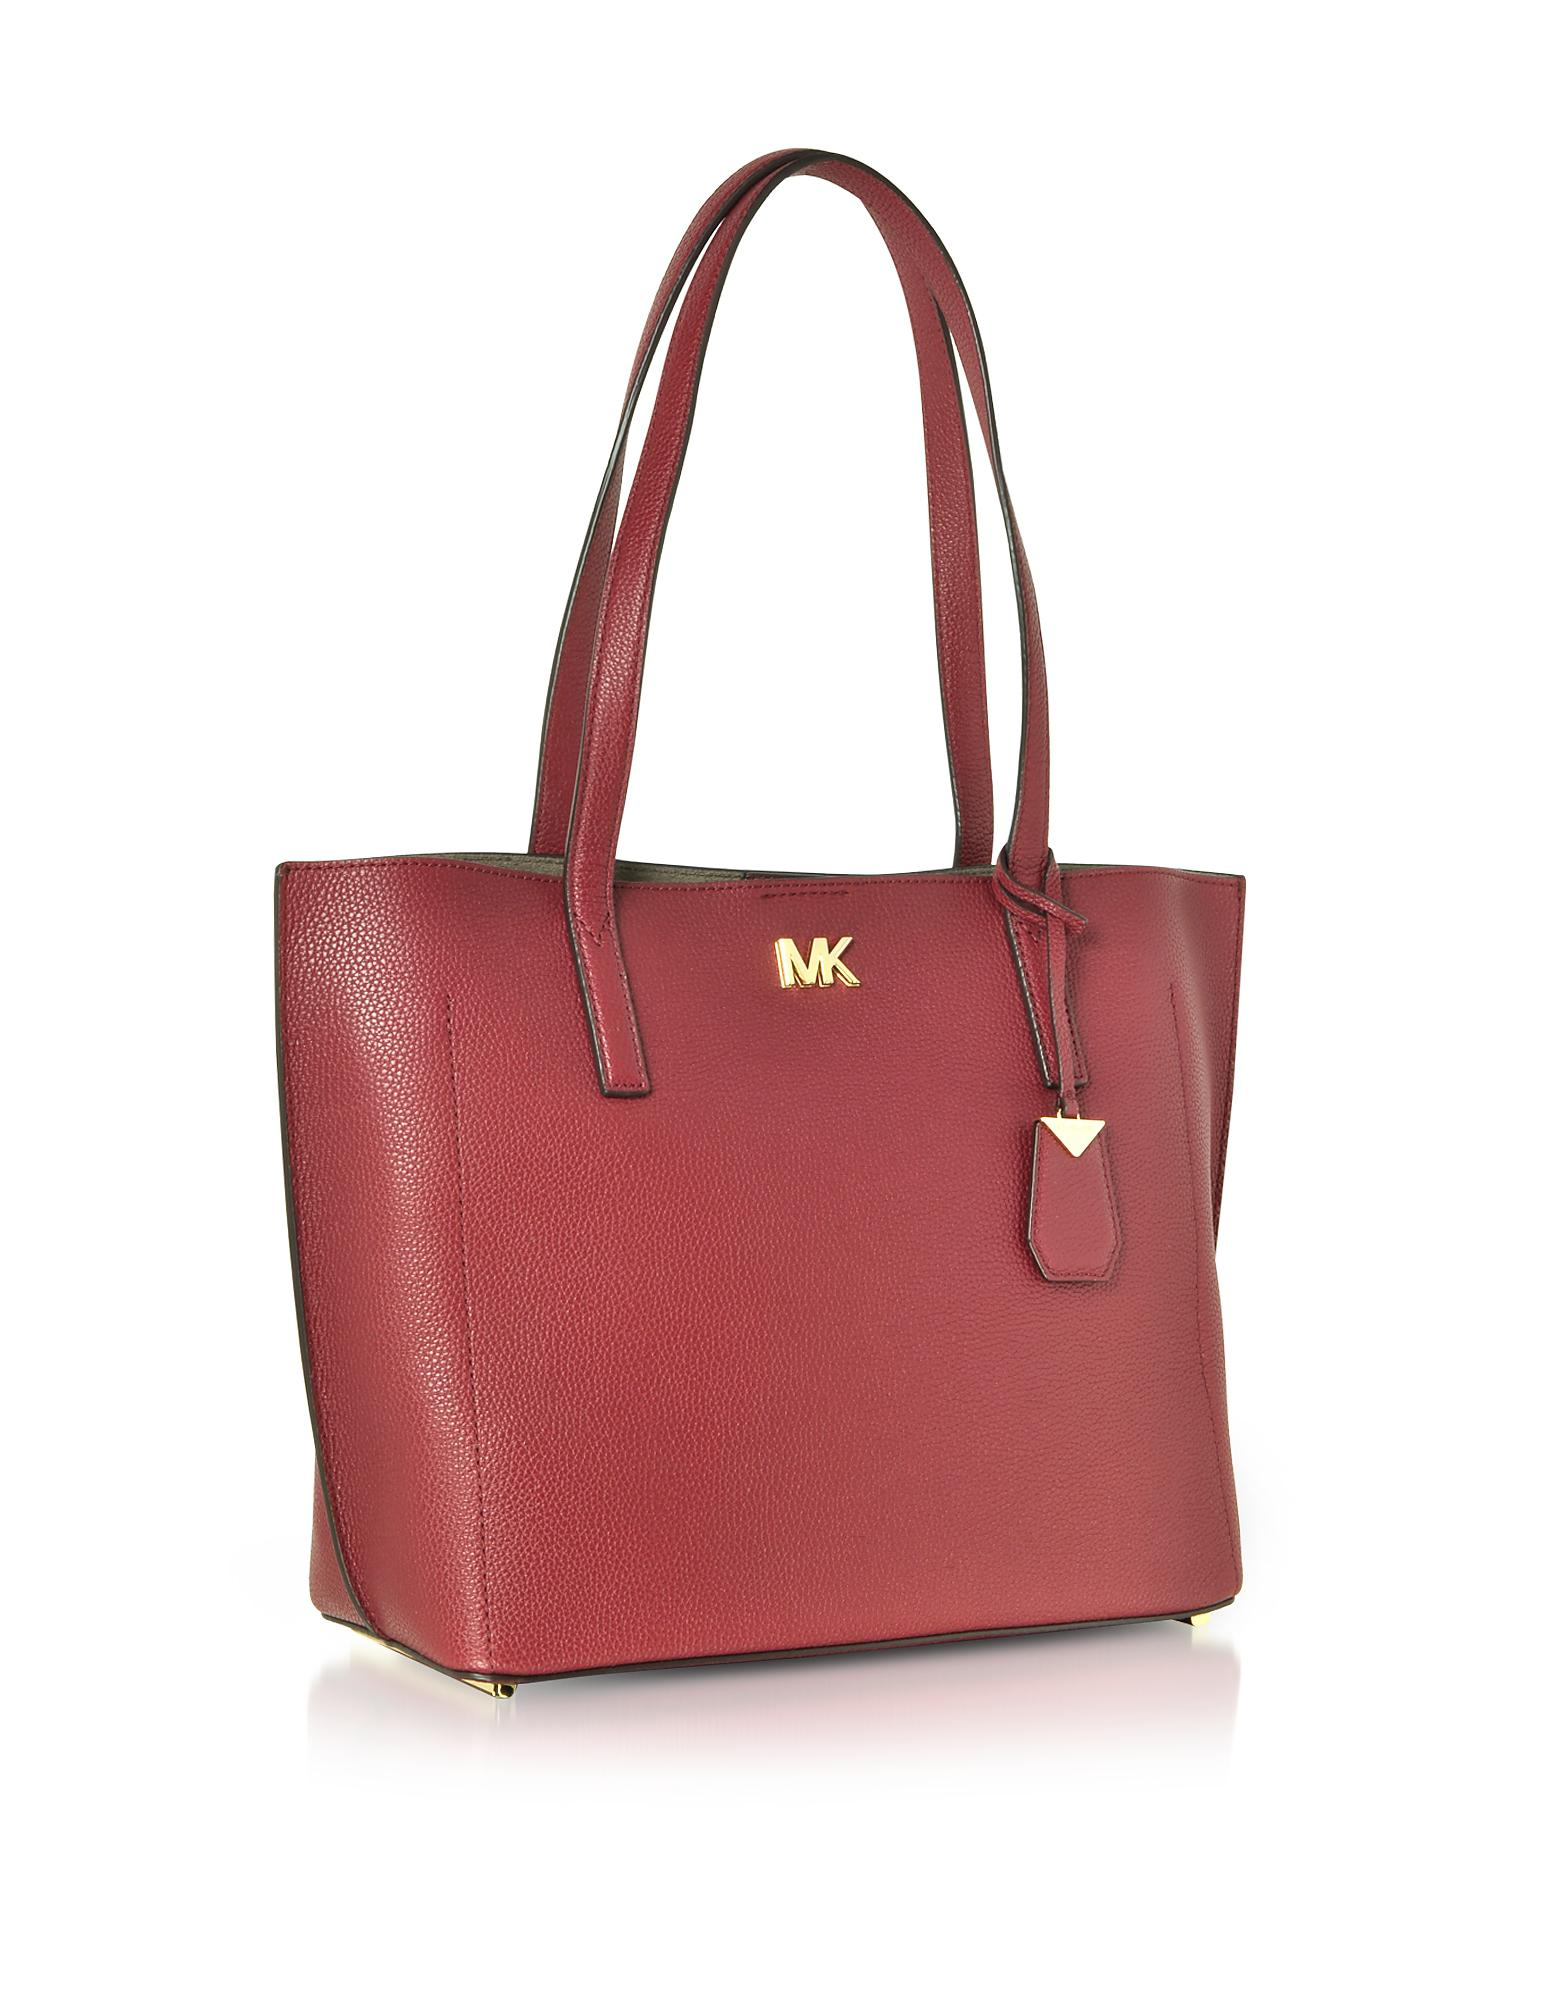 0b4f8178574d9e Michael Kors Pebbled Leather Ana Medium Ew Bonded Tote Bag in Red - Lyst